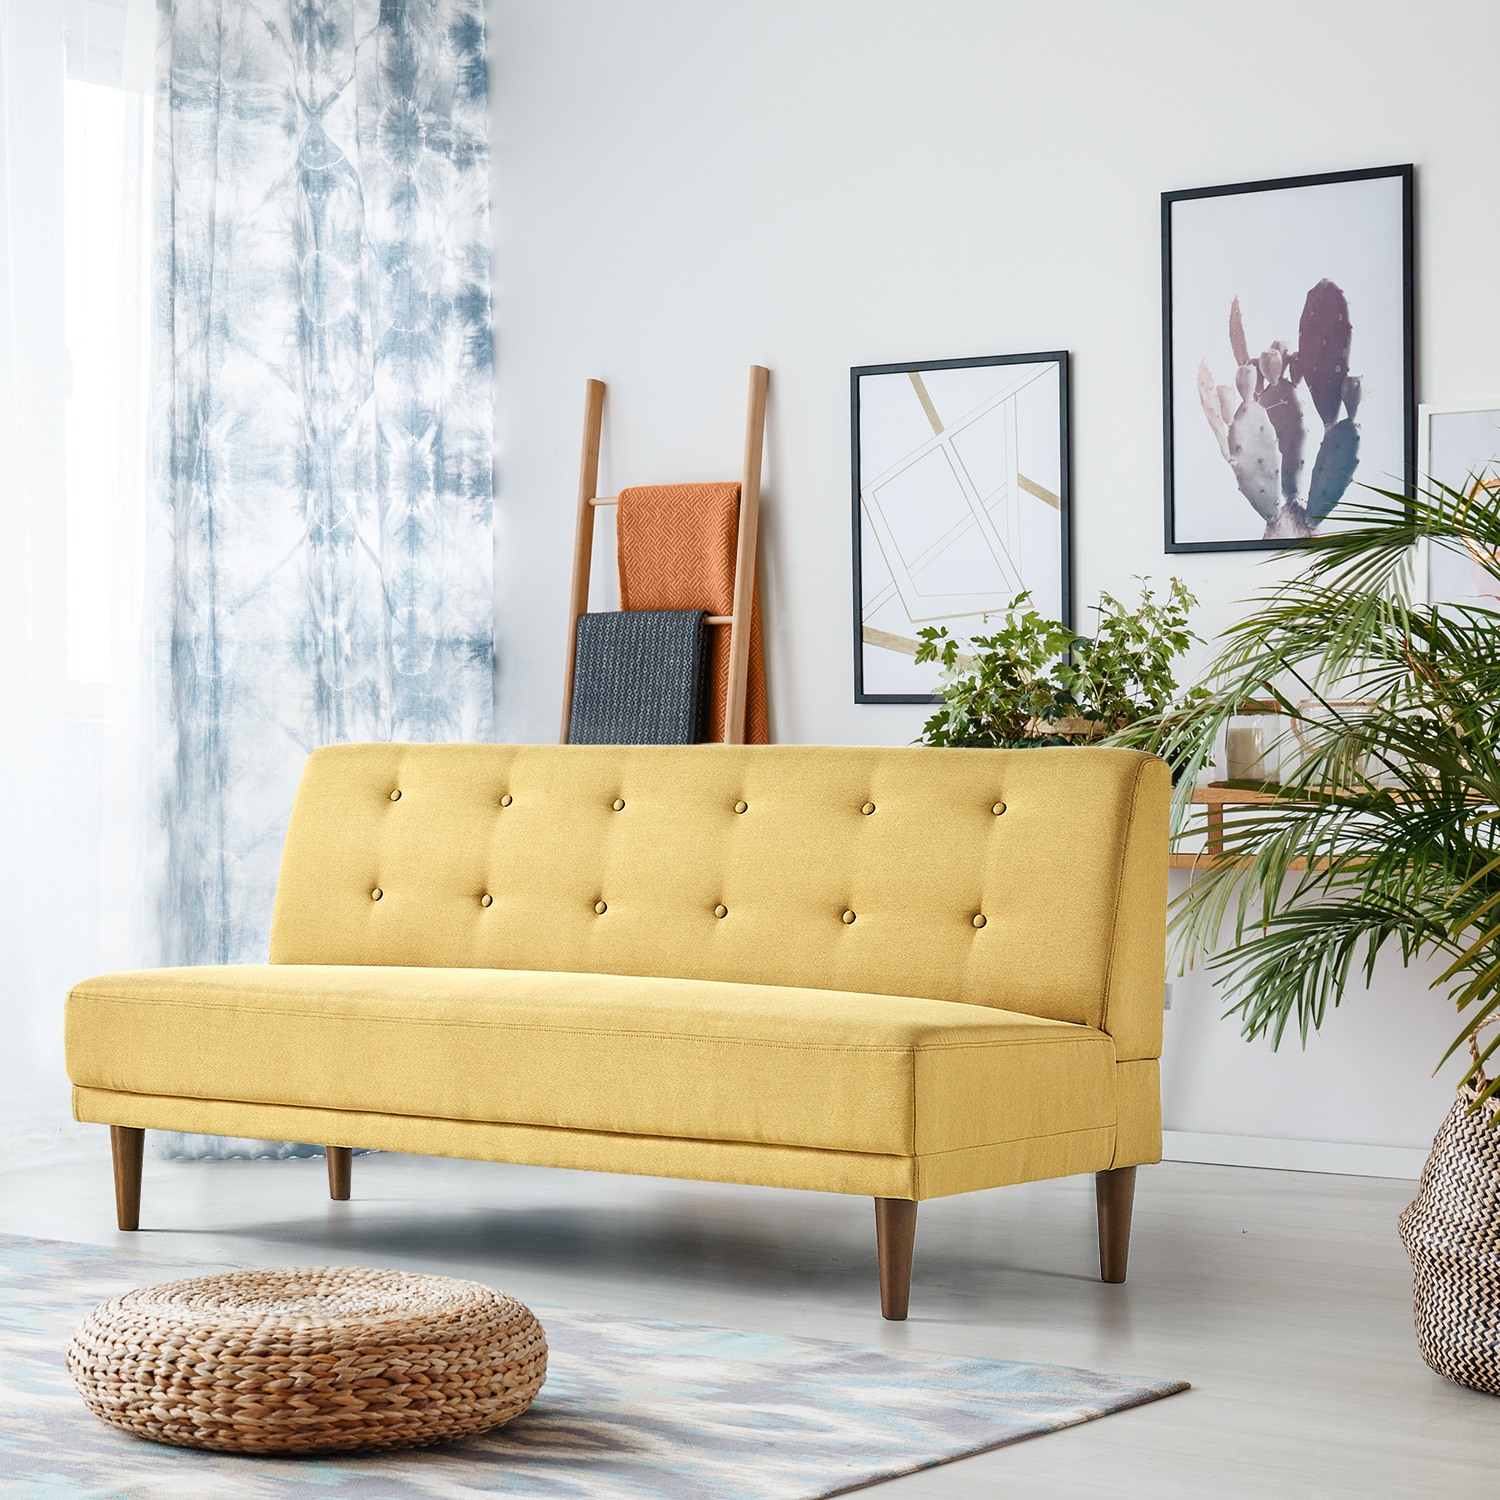 Astounding Zinus Lucy Armless Sofa Mustard Yellow Walmart Com Ncnpc Chair Design For Home Ncnpcorg